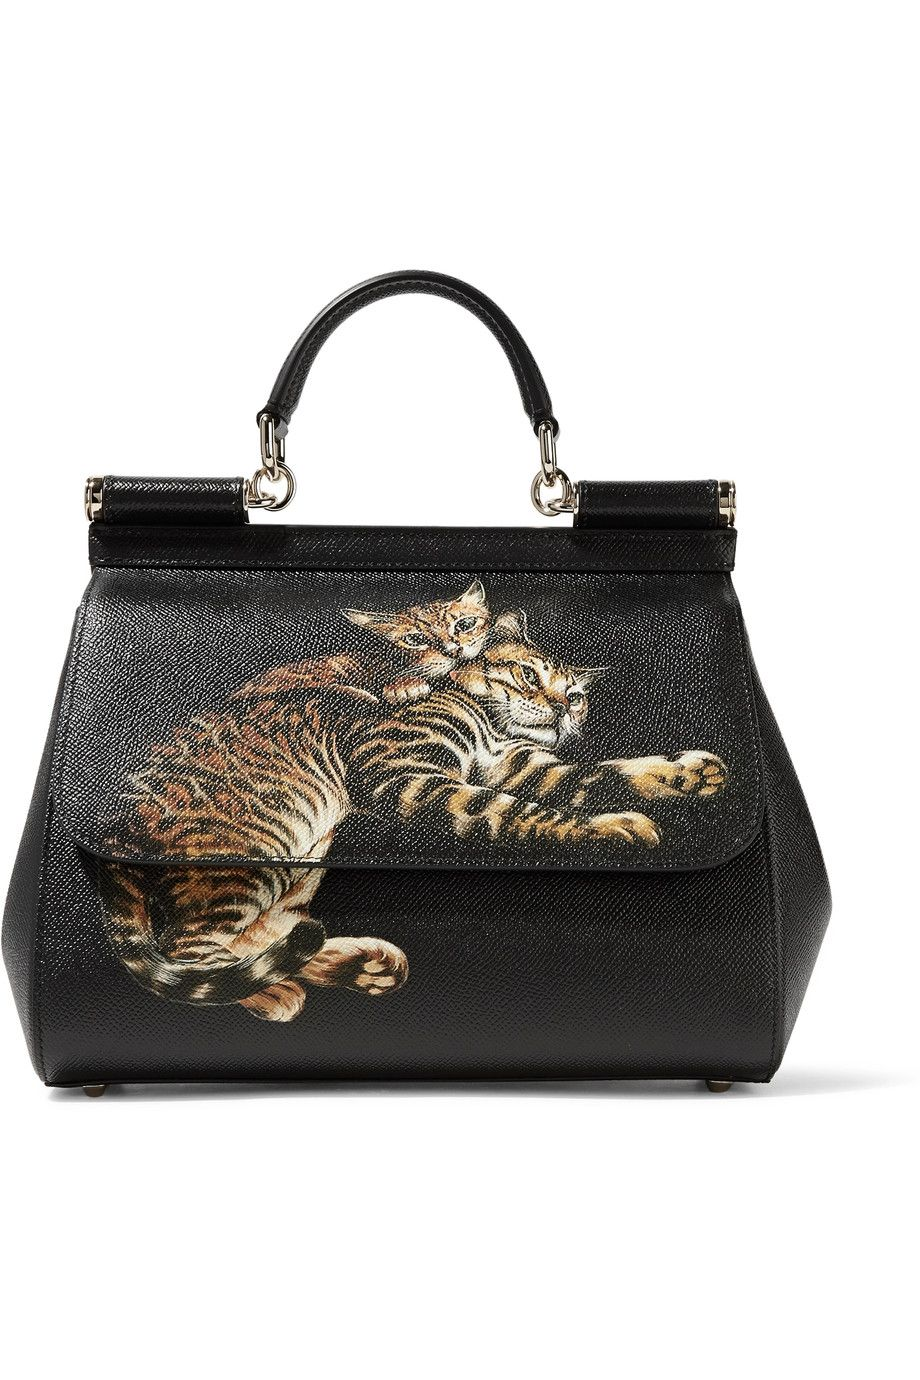 DOLCE   GABBANA Sicily Printed Textured-Leather Shoulder Bag.  dolcegabbana   bags  shoulder bags  hand bags  leather   10ce6aa673ed1